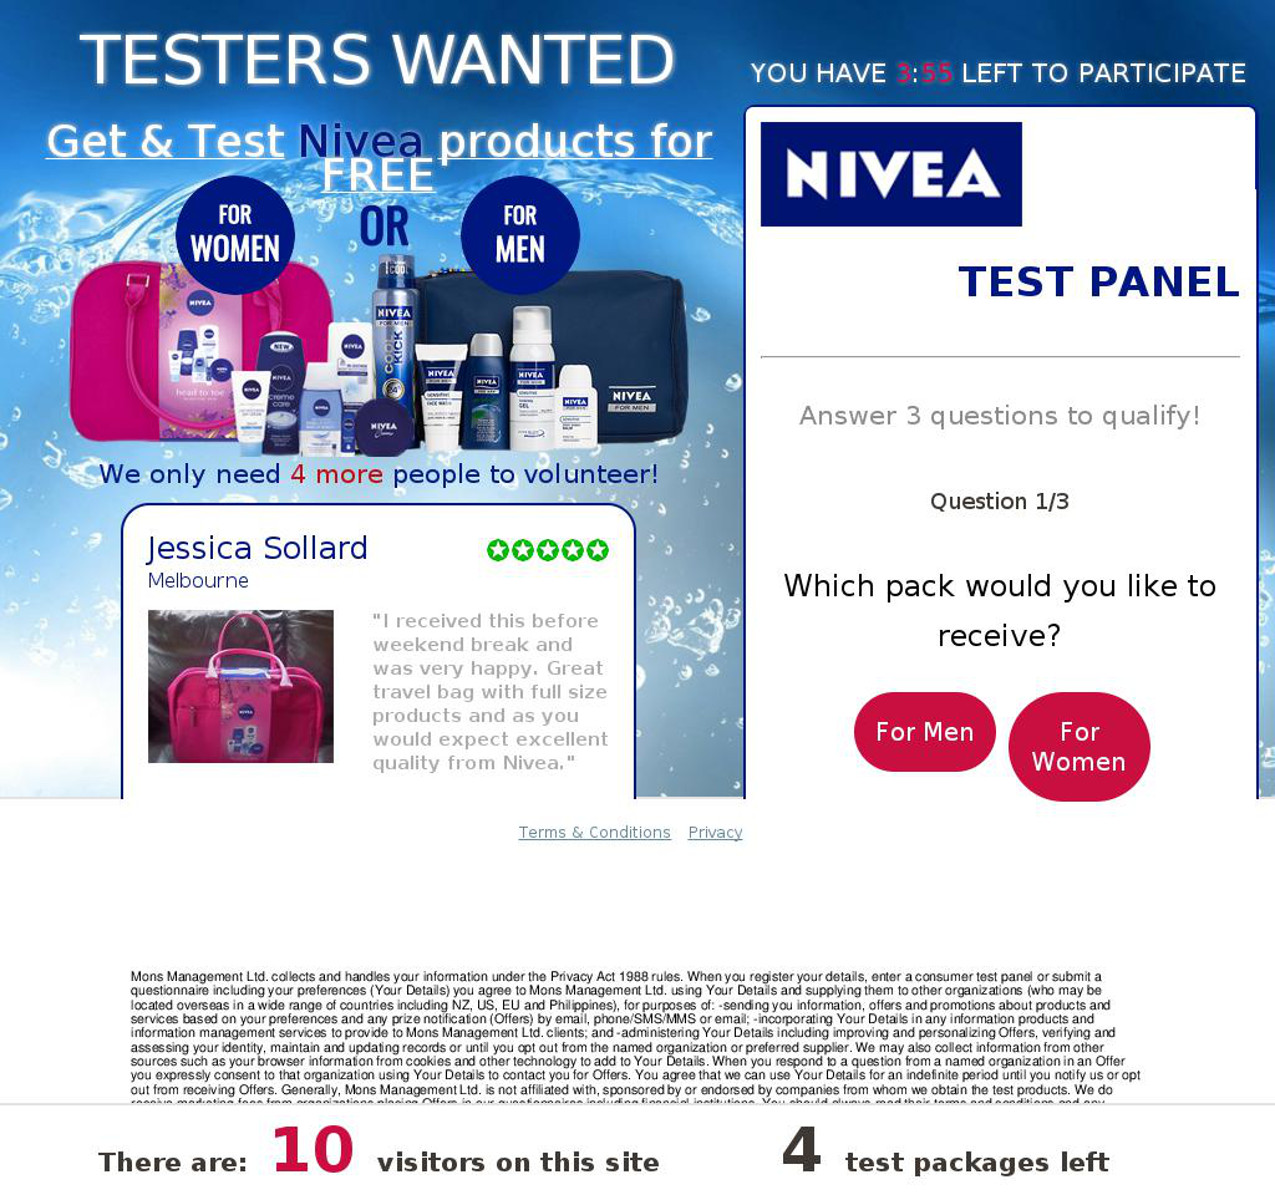 MailShark Test Nivea products for free Visit Website